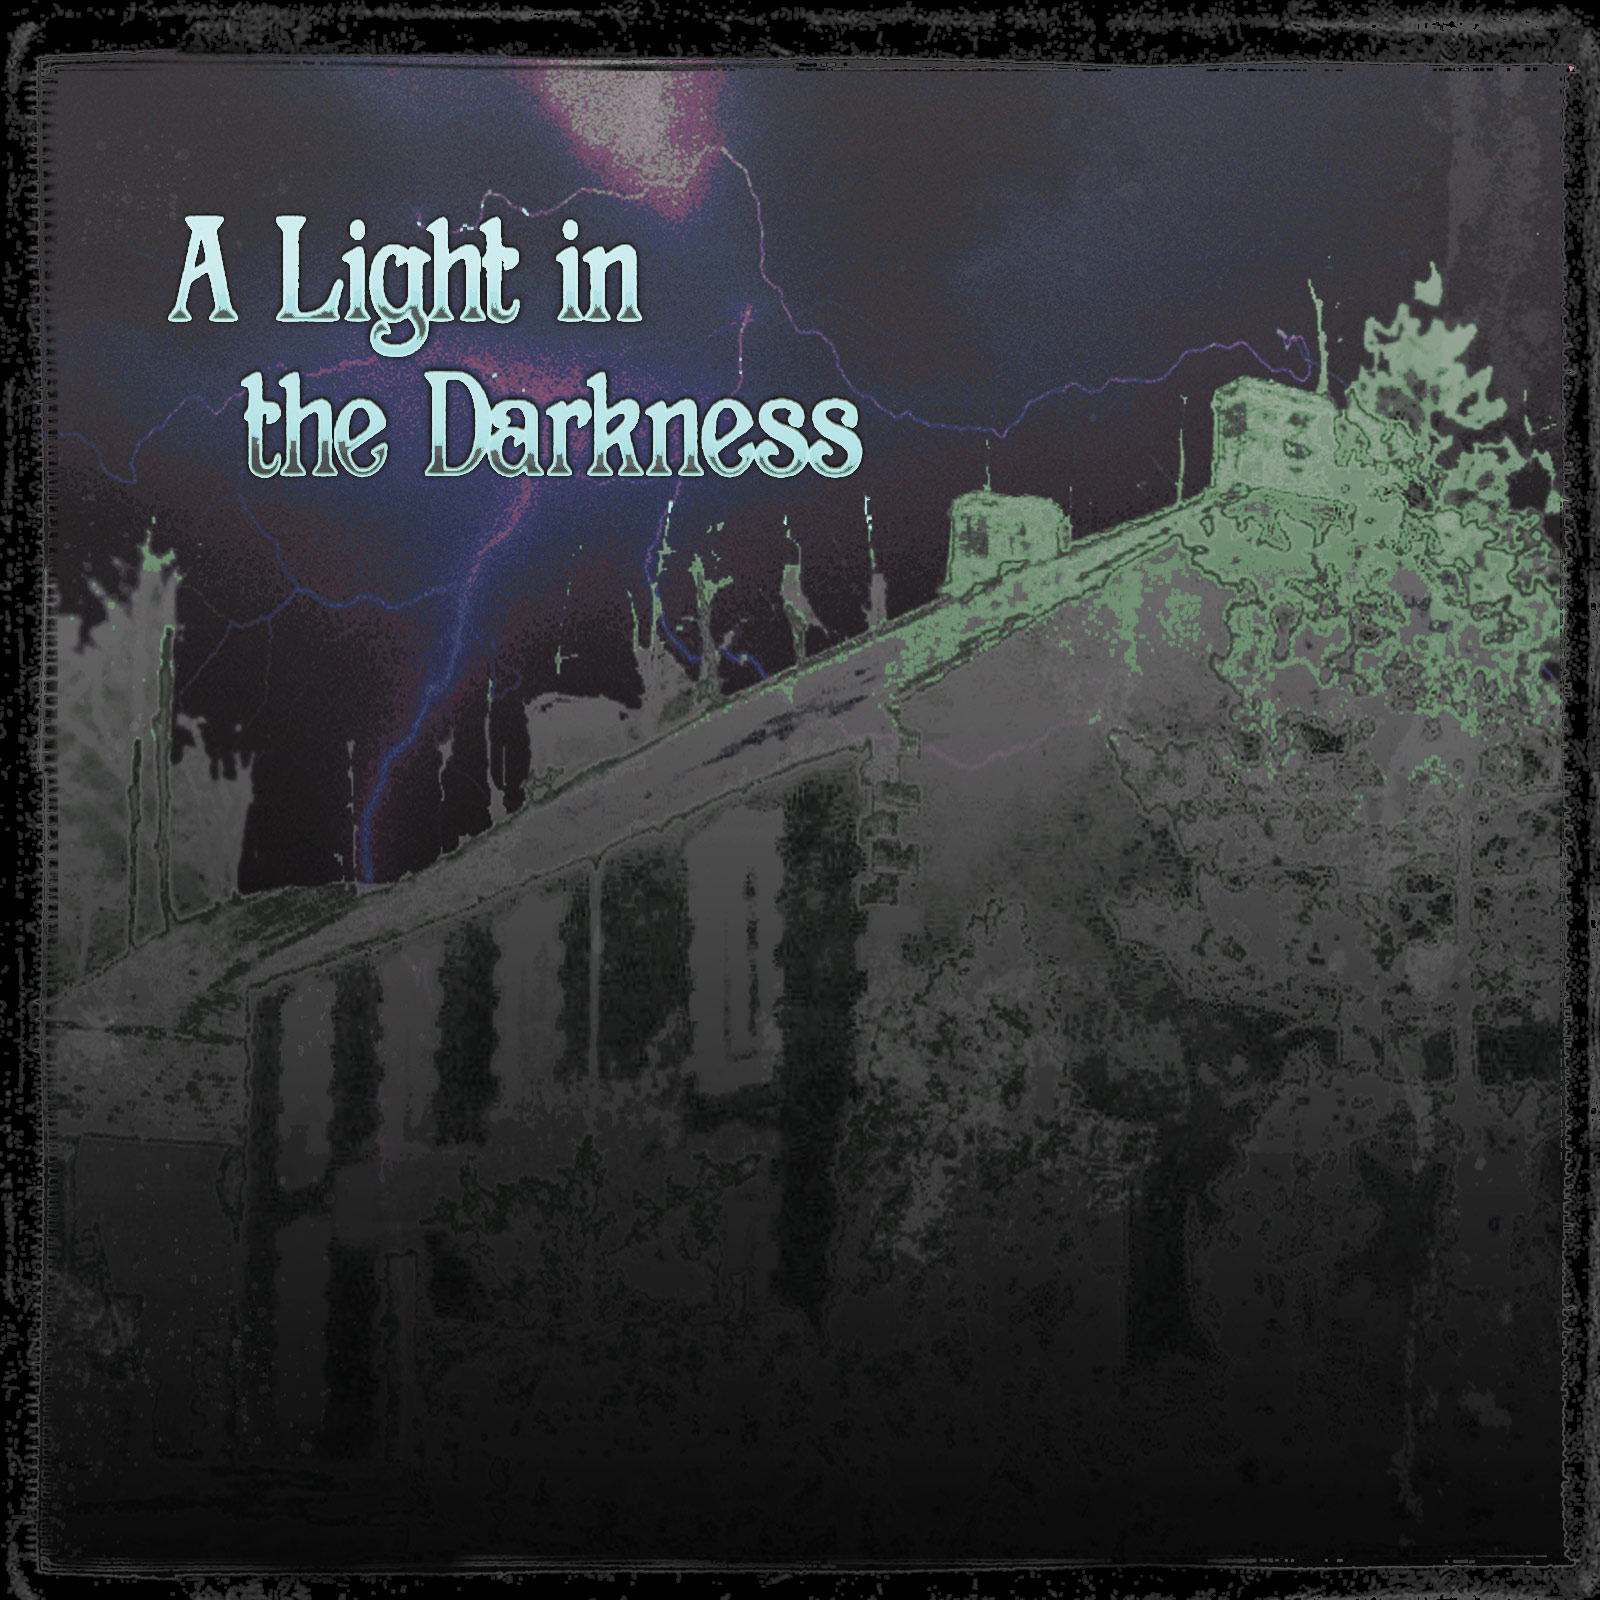 A Light in the Darkness by Gary Buller